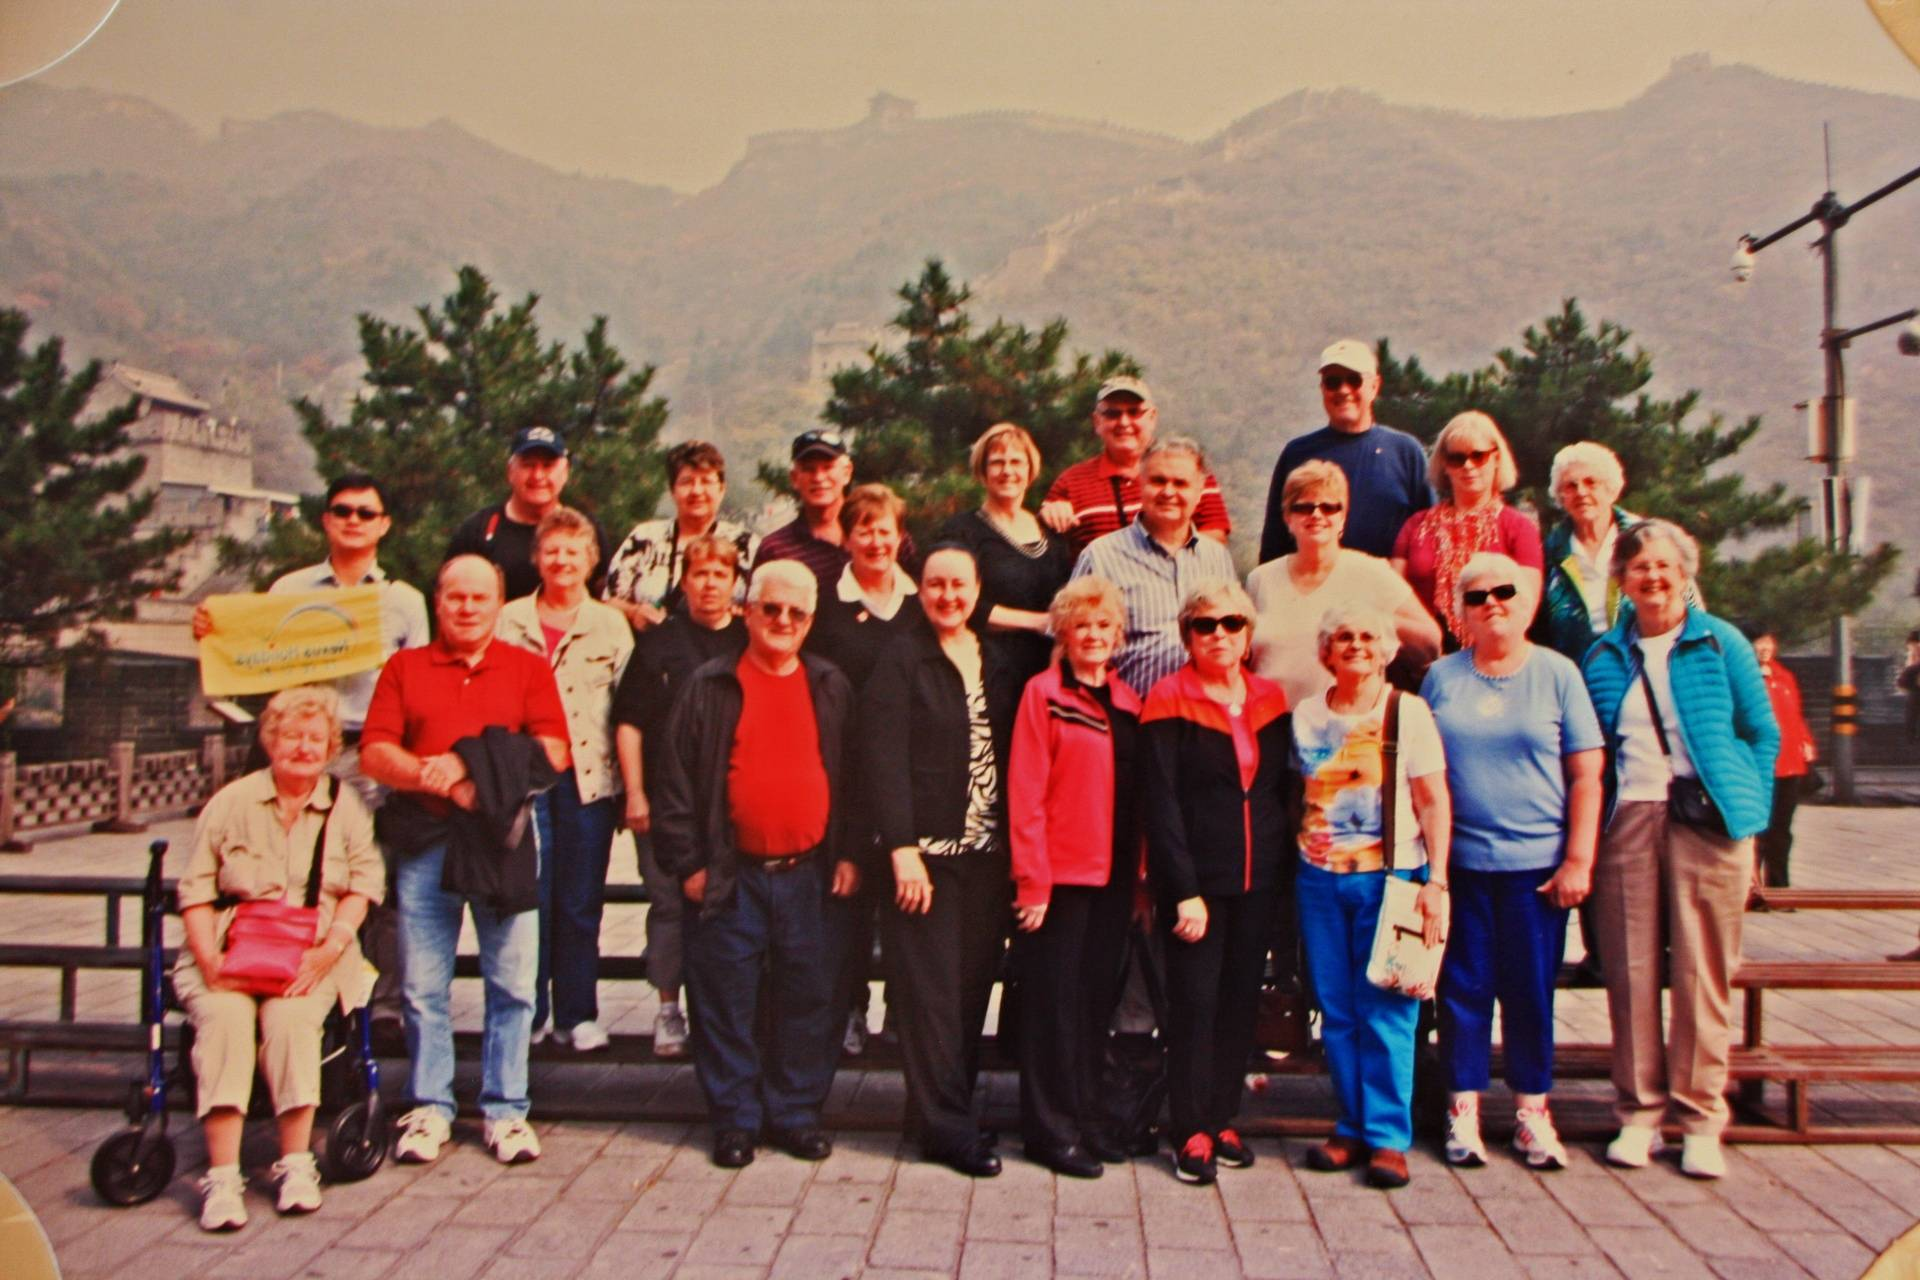 Our Tour Group at Great Wall of China in Beijing